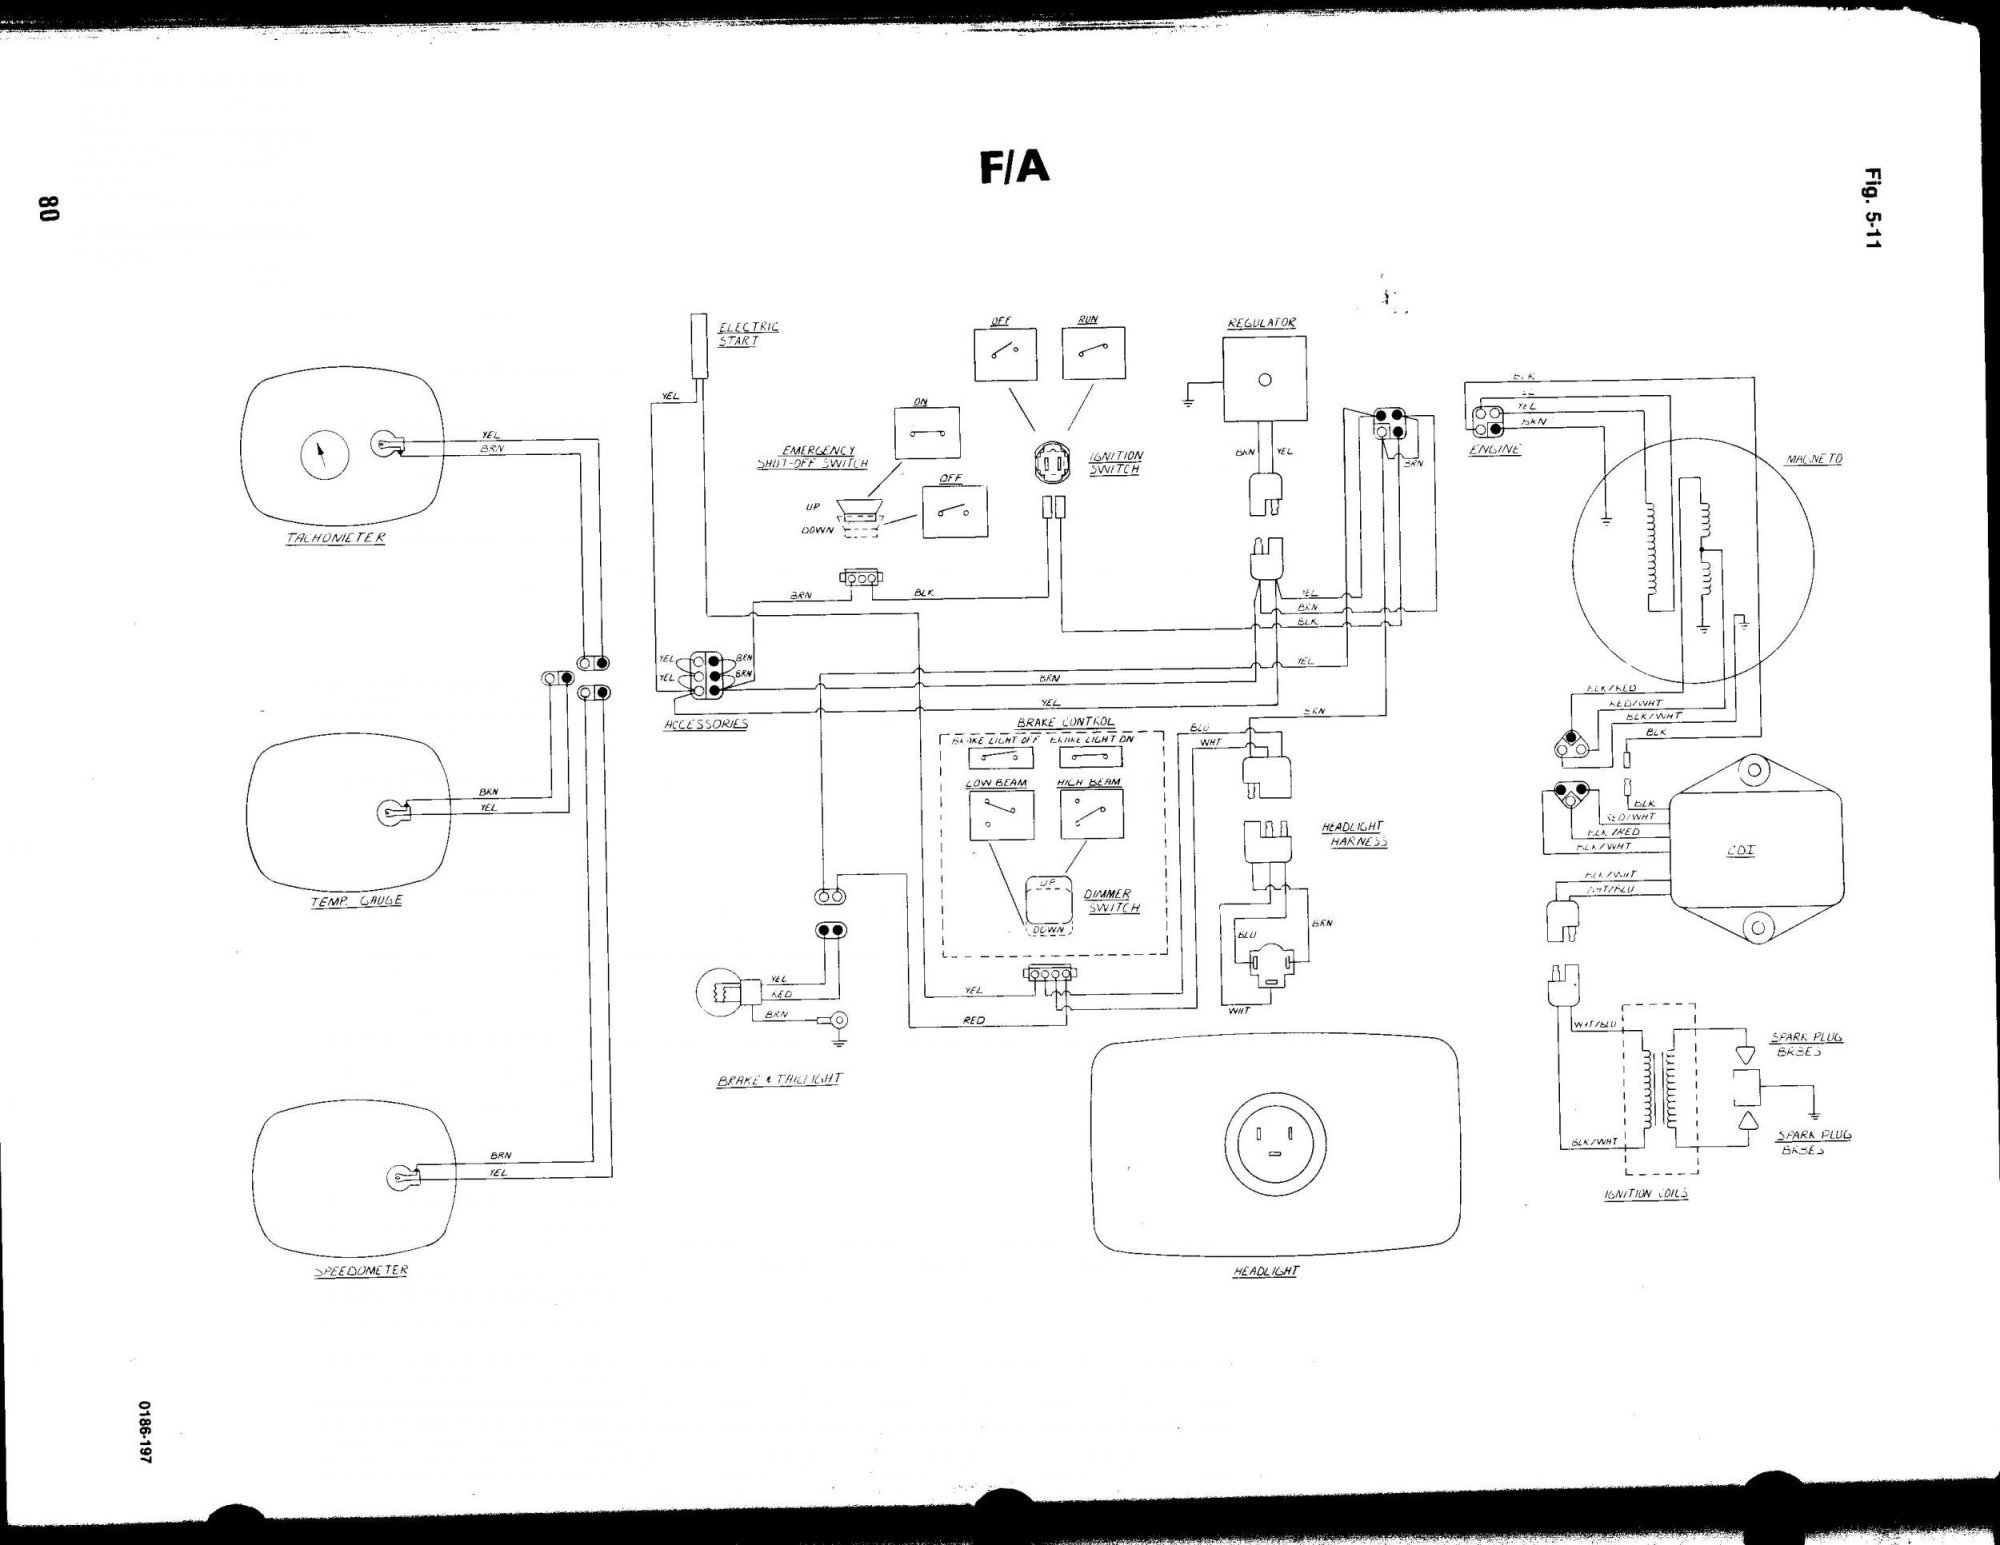 hight resolution of 1997 arctic cat 580 ext wiring diagram wiring diagrams bib